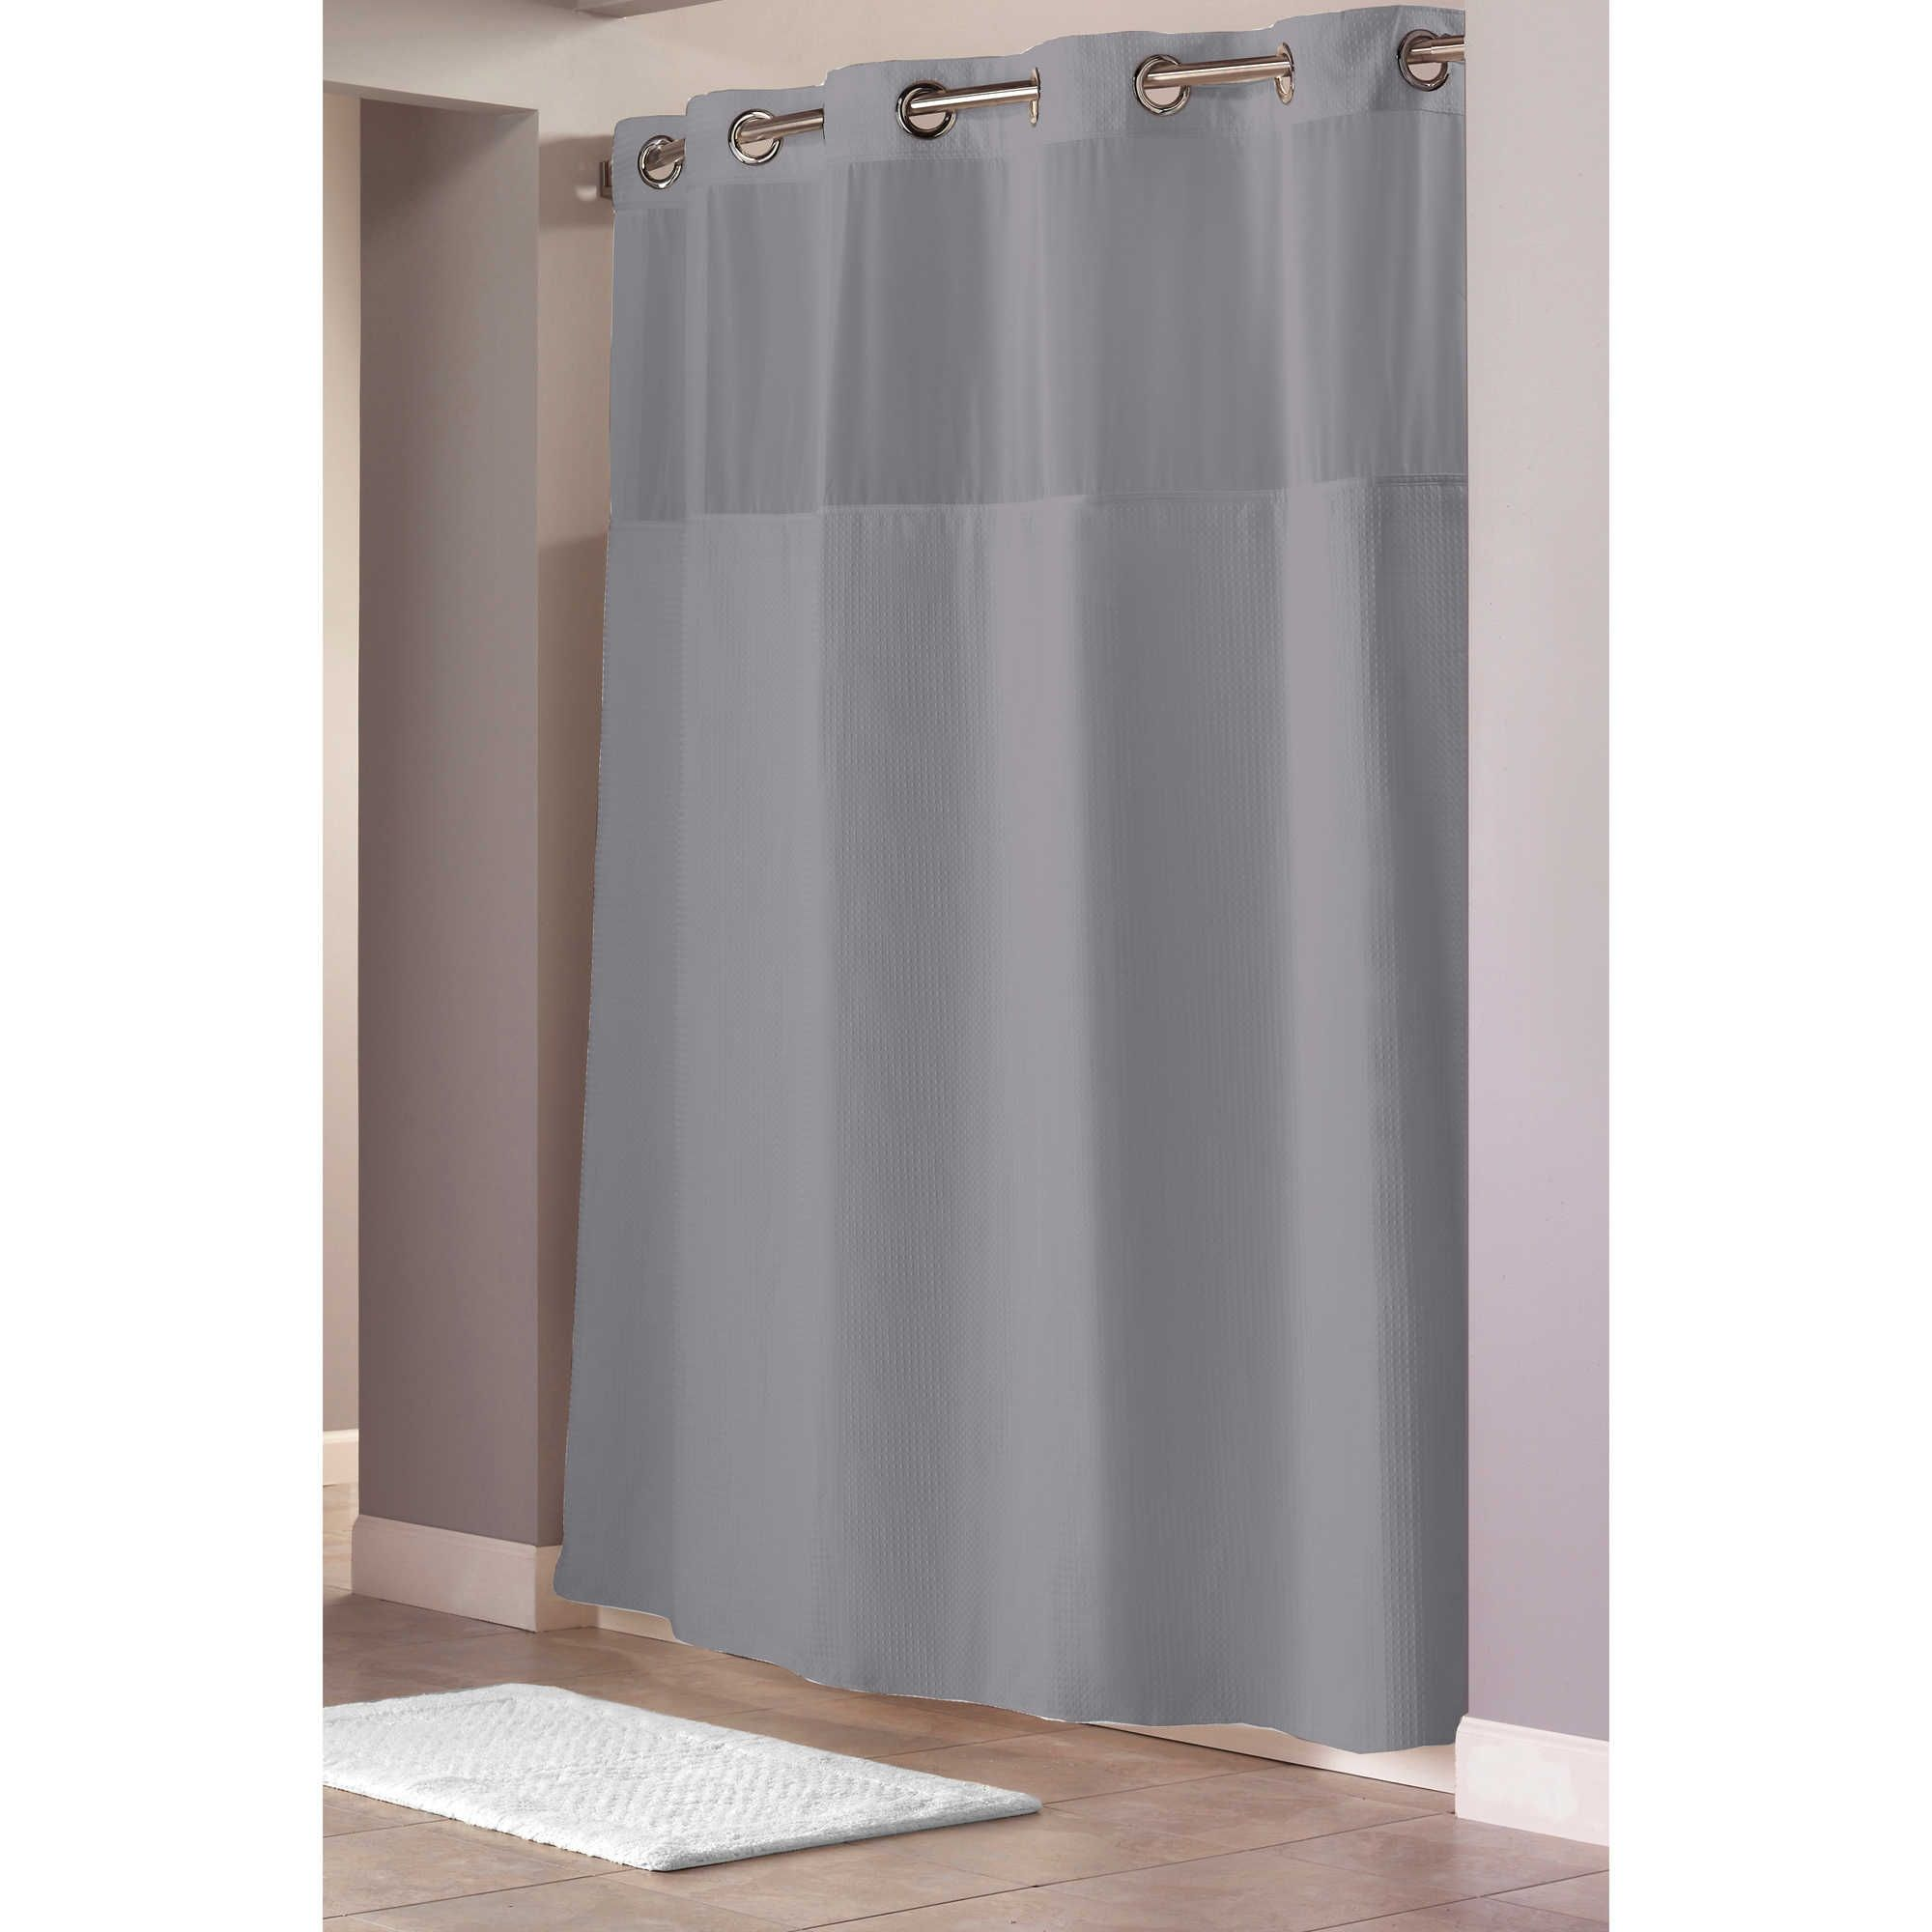 Hookless Grommet Shower Curtains